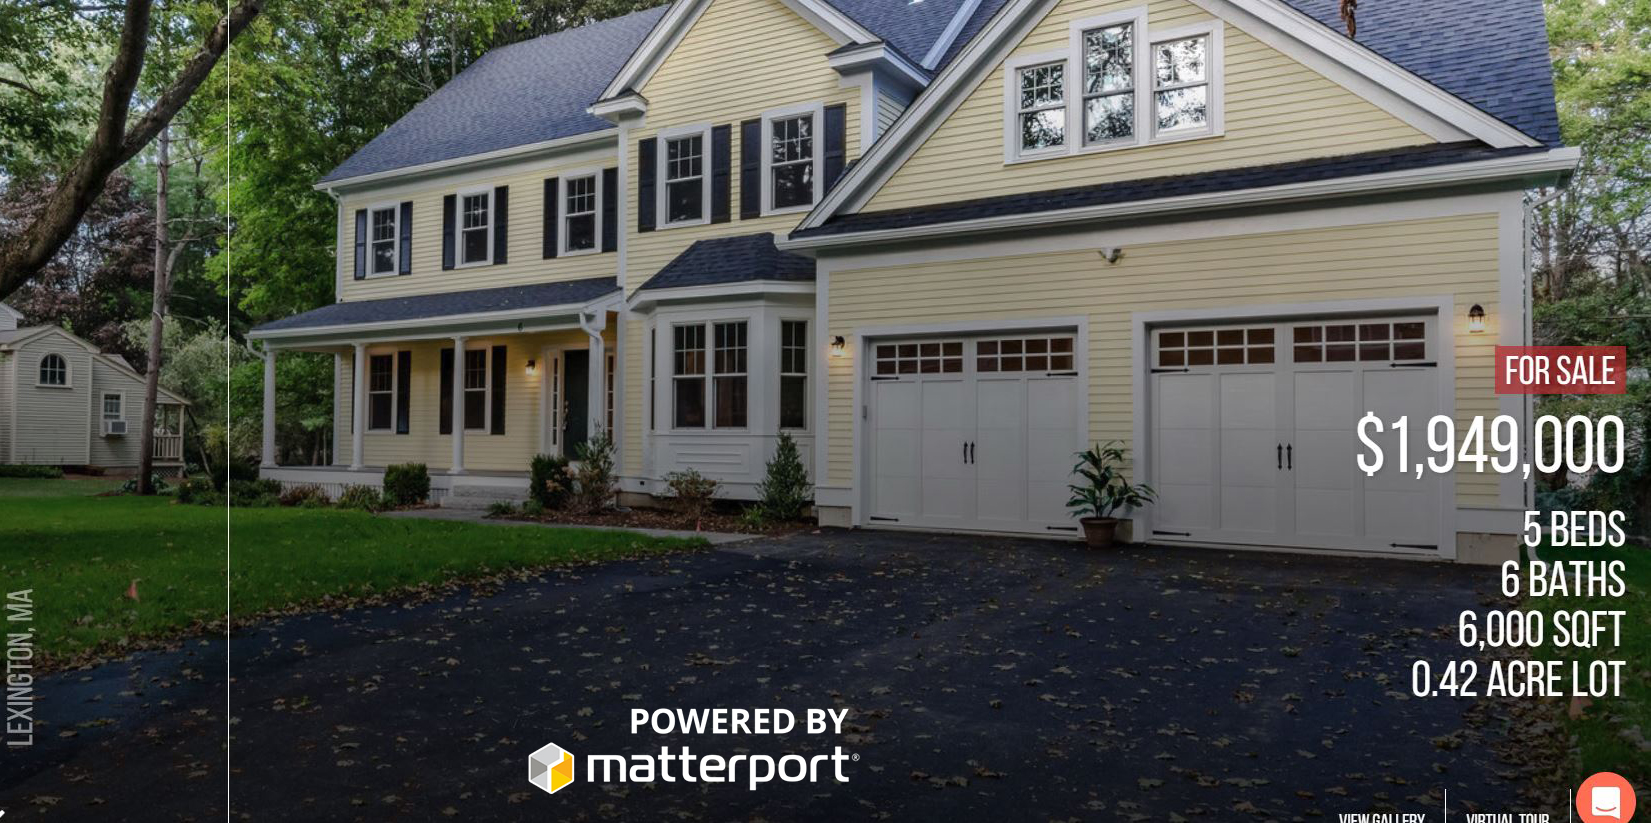 REAL ESTATE TOTAL+ 3D: - Approximately 30 magazine quality property photos delivered within 24-36 hoursCustom property website with MLSPIN link3D Walkthrough virtual tour powered by MatterportLaser-measured branded printable floorplanIncluded print and web marketing tools